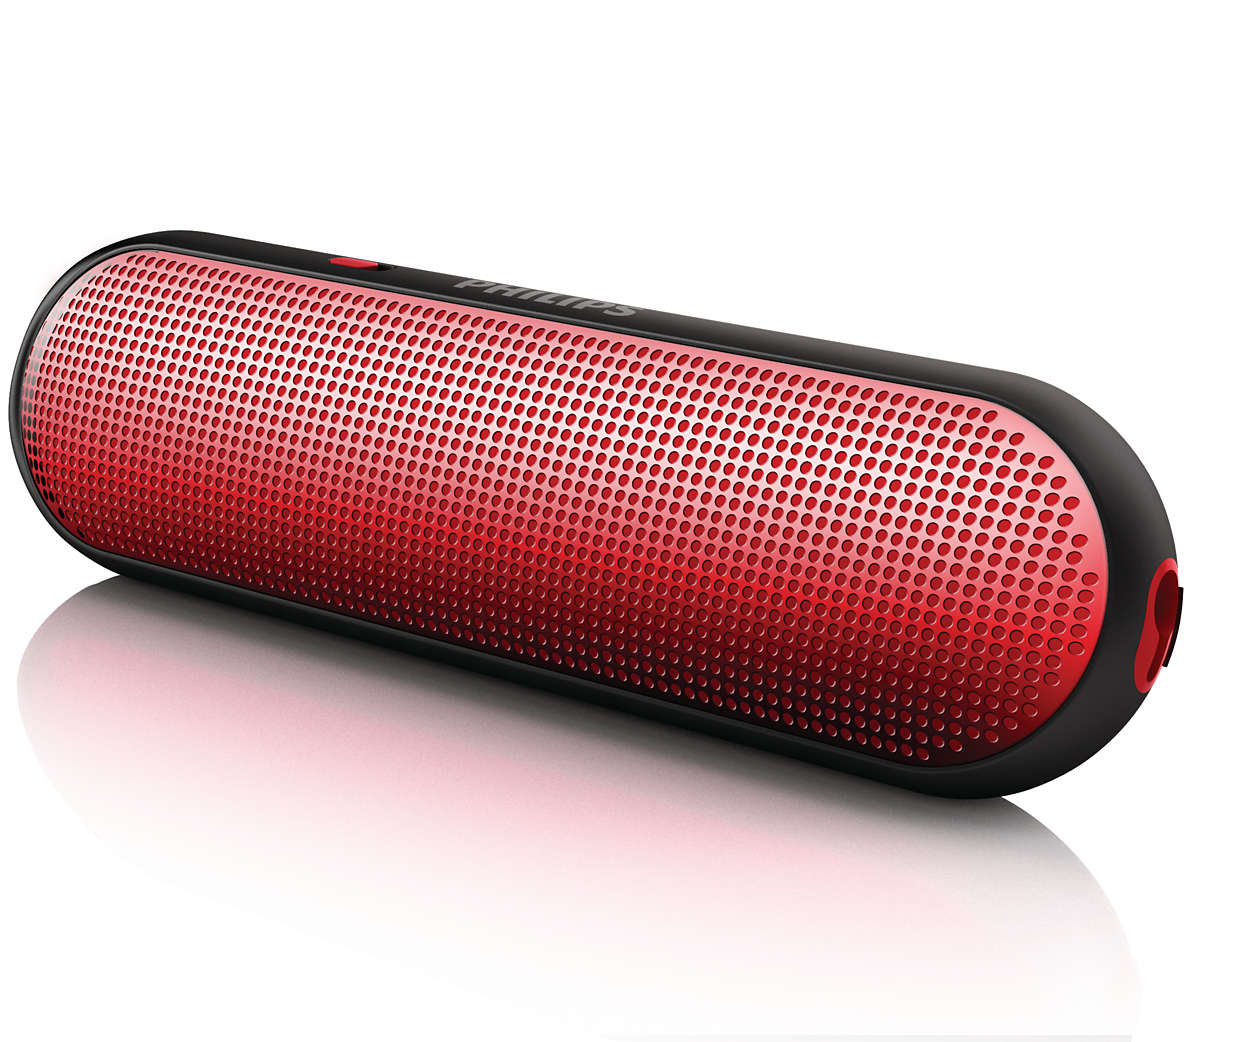 Stereo sound on the go